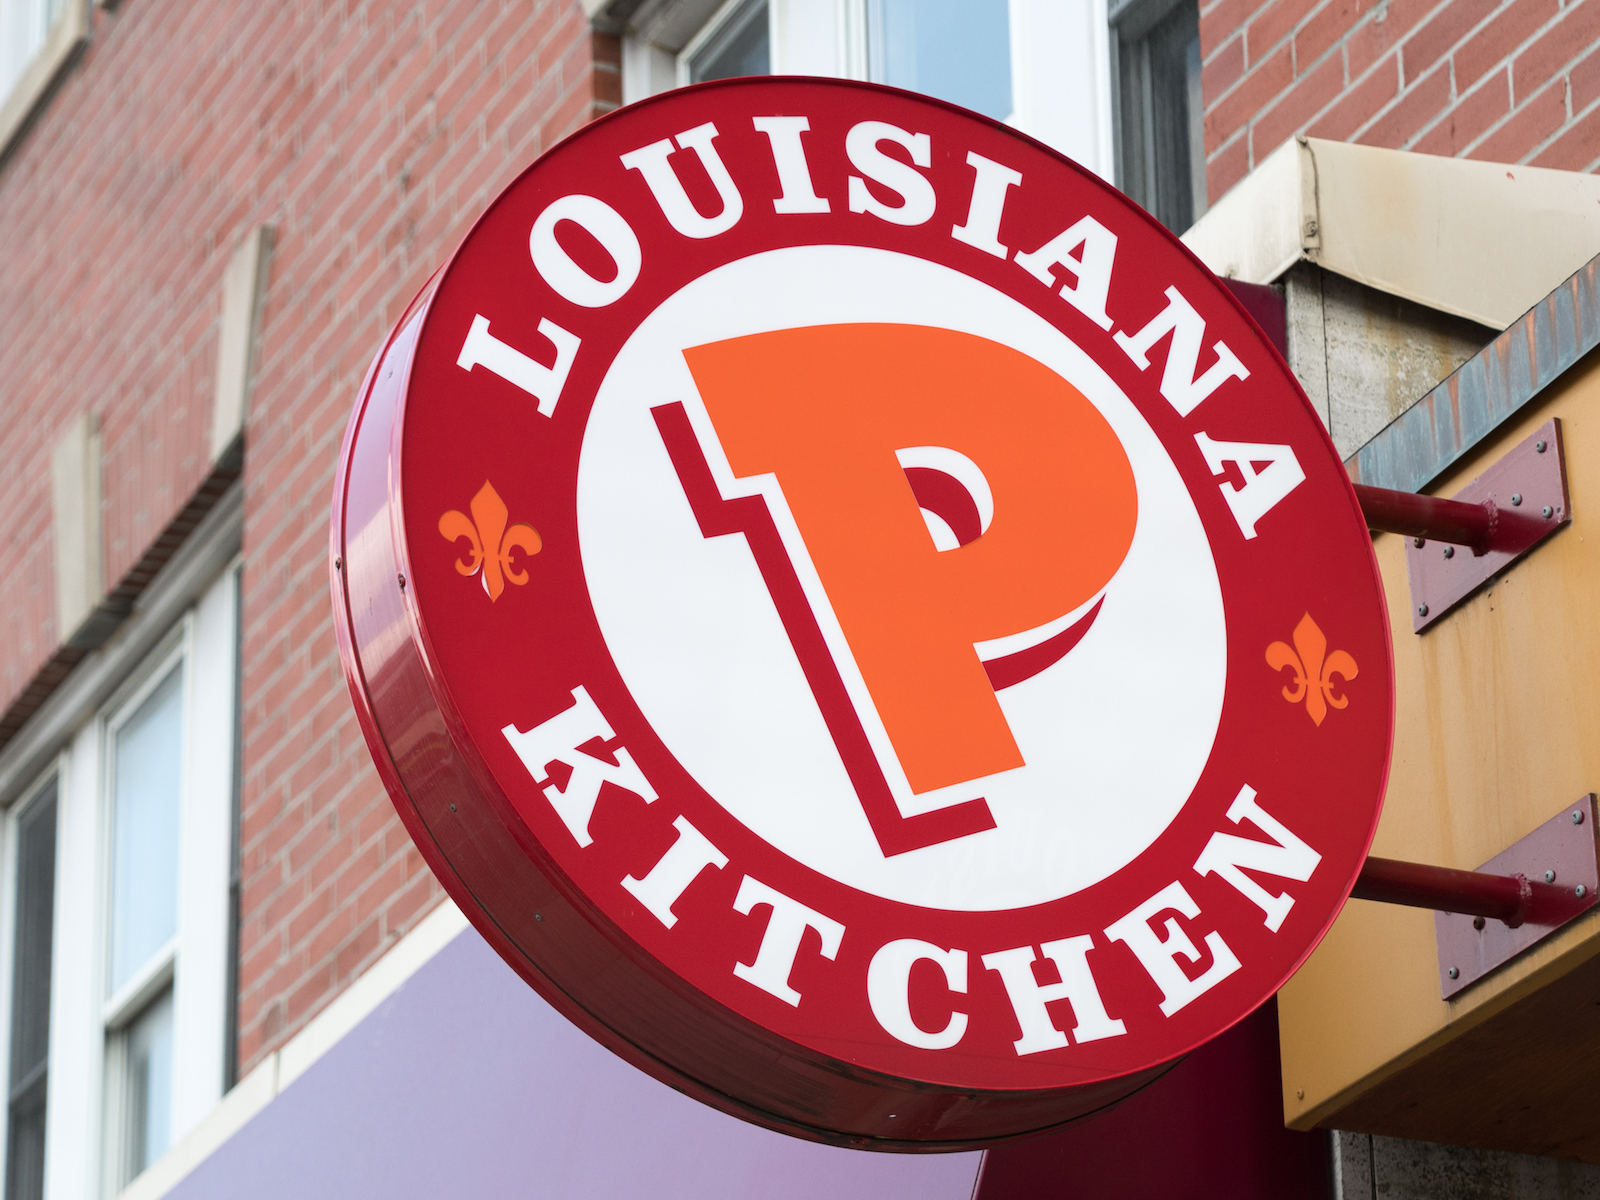 Local restaurant busted for selling Popeye's chicken as its own